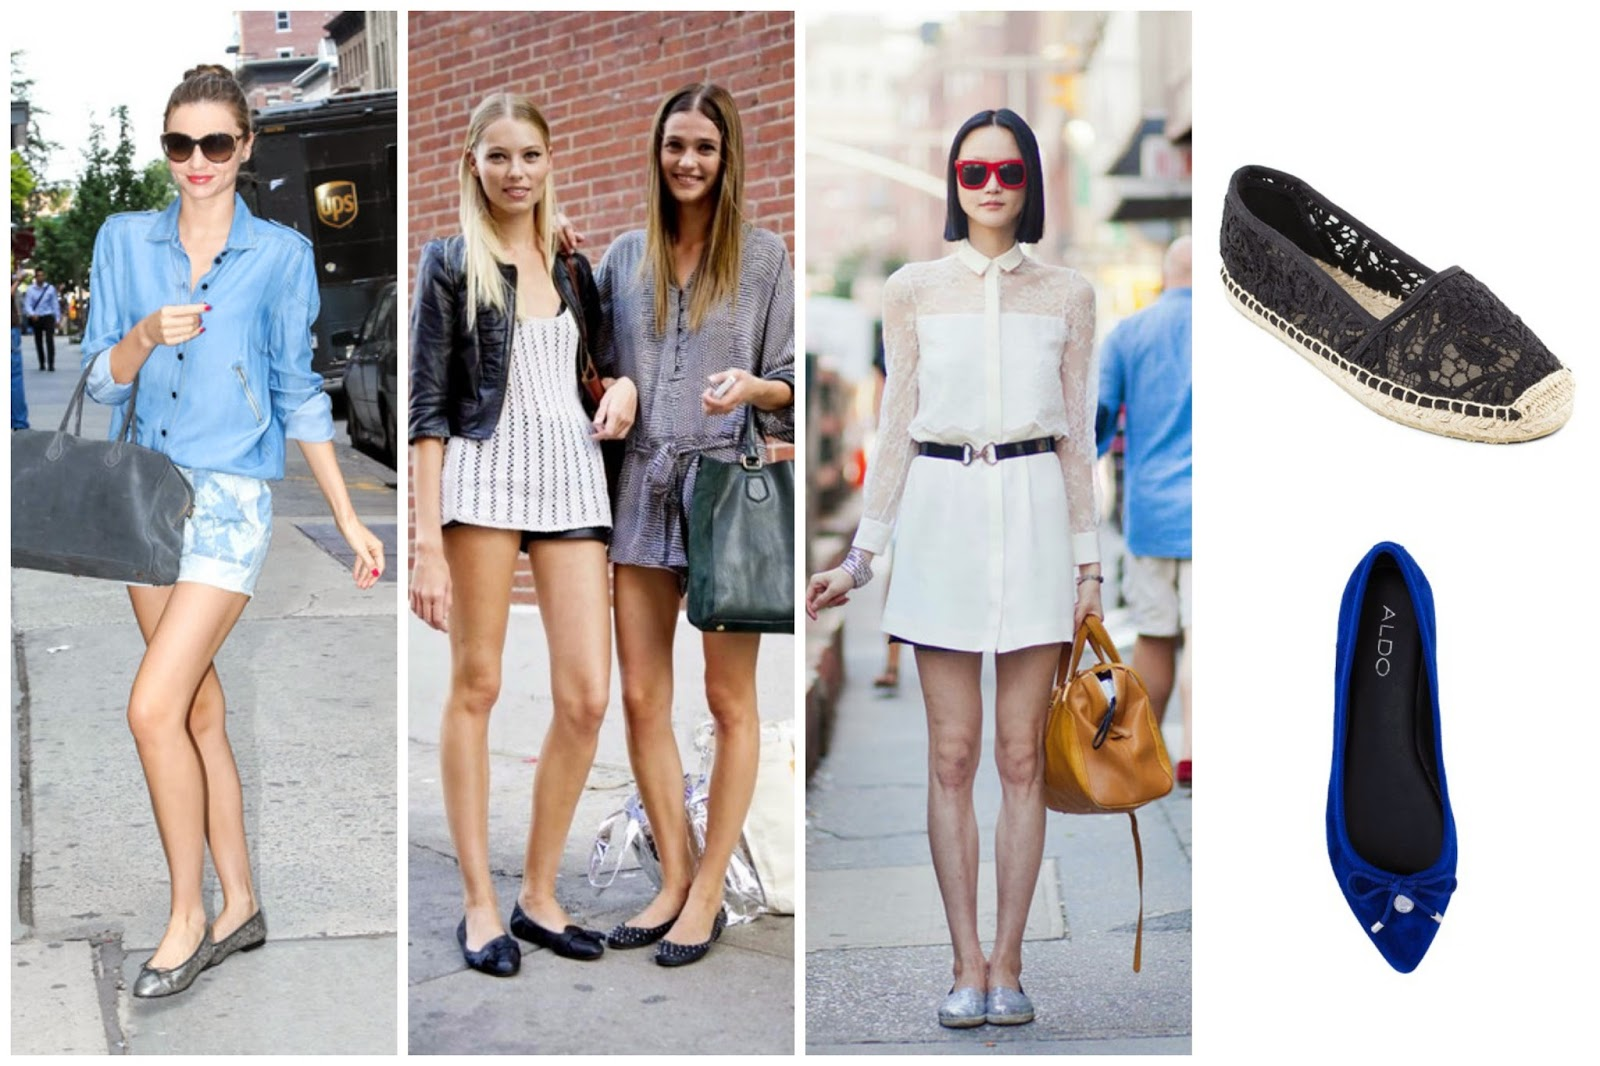 How to espadrille wear flats fotos